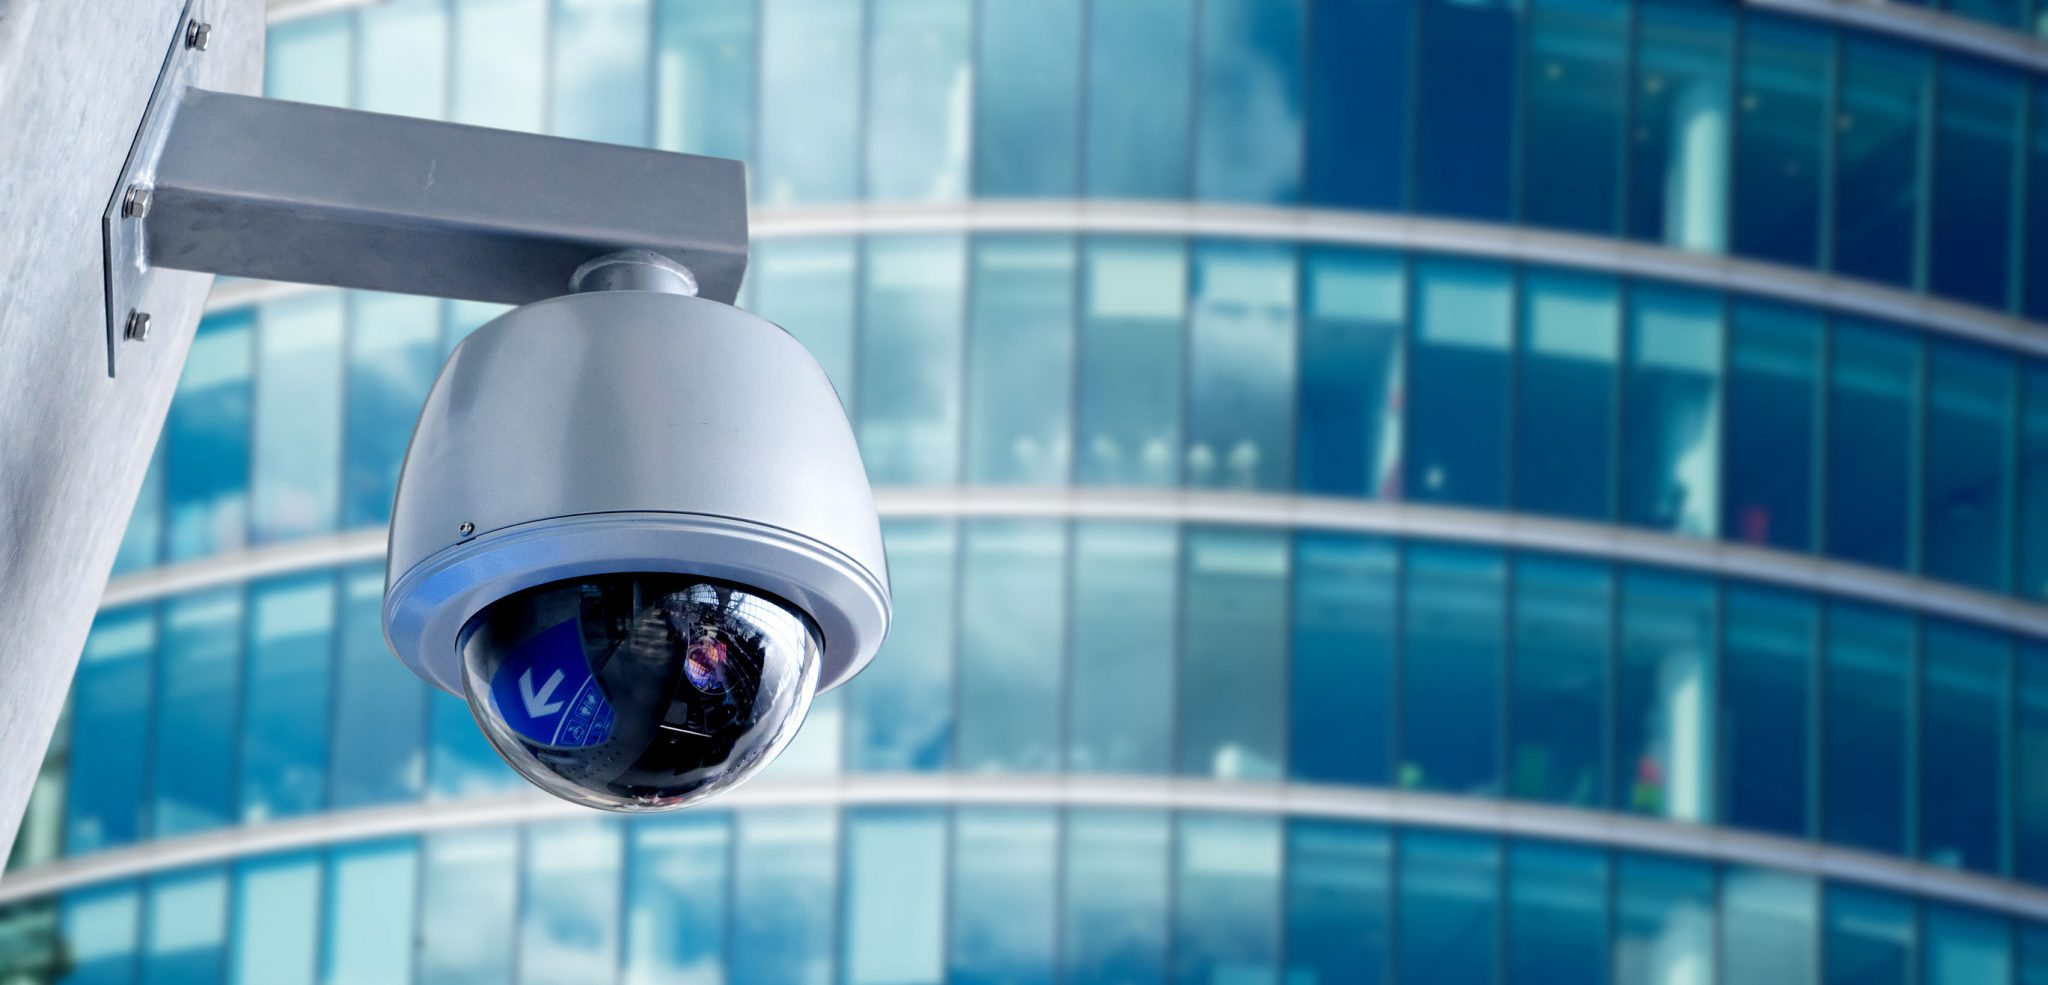 Bbg Cctv Surveillance Camera For Security System Services